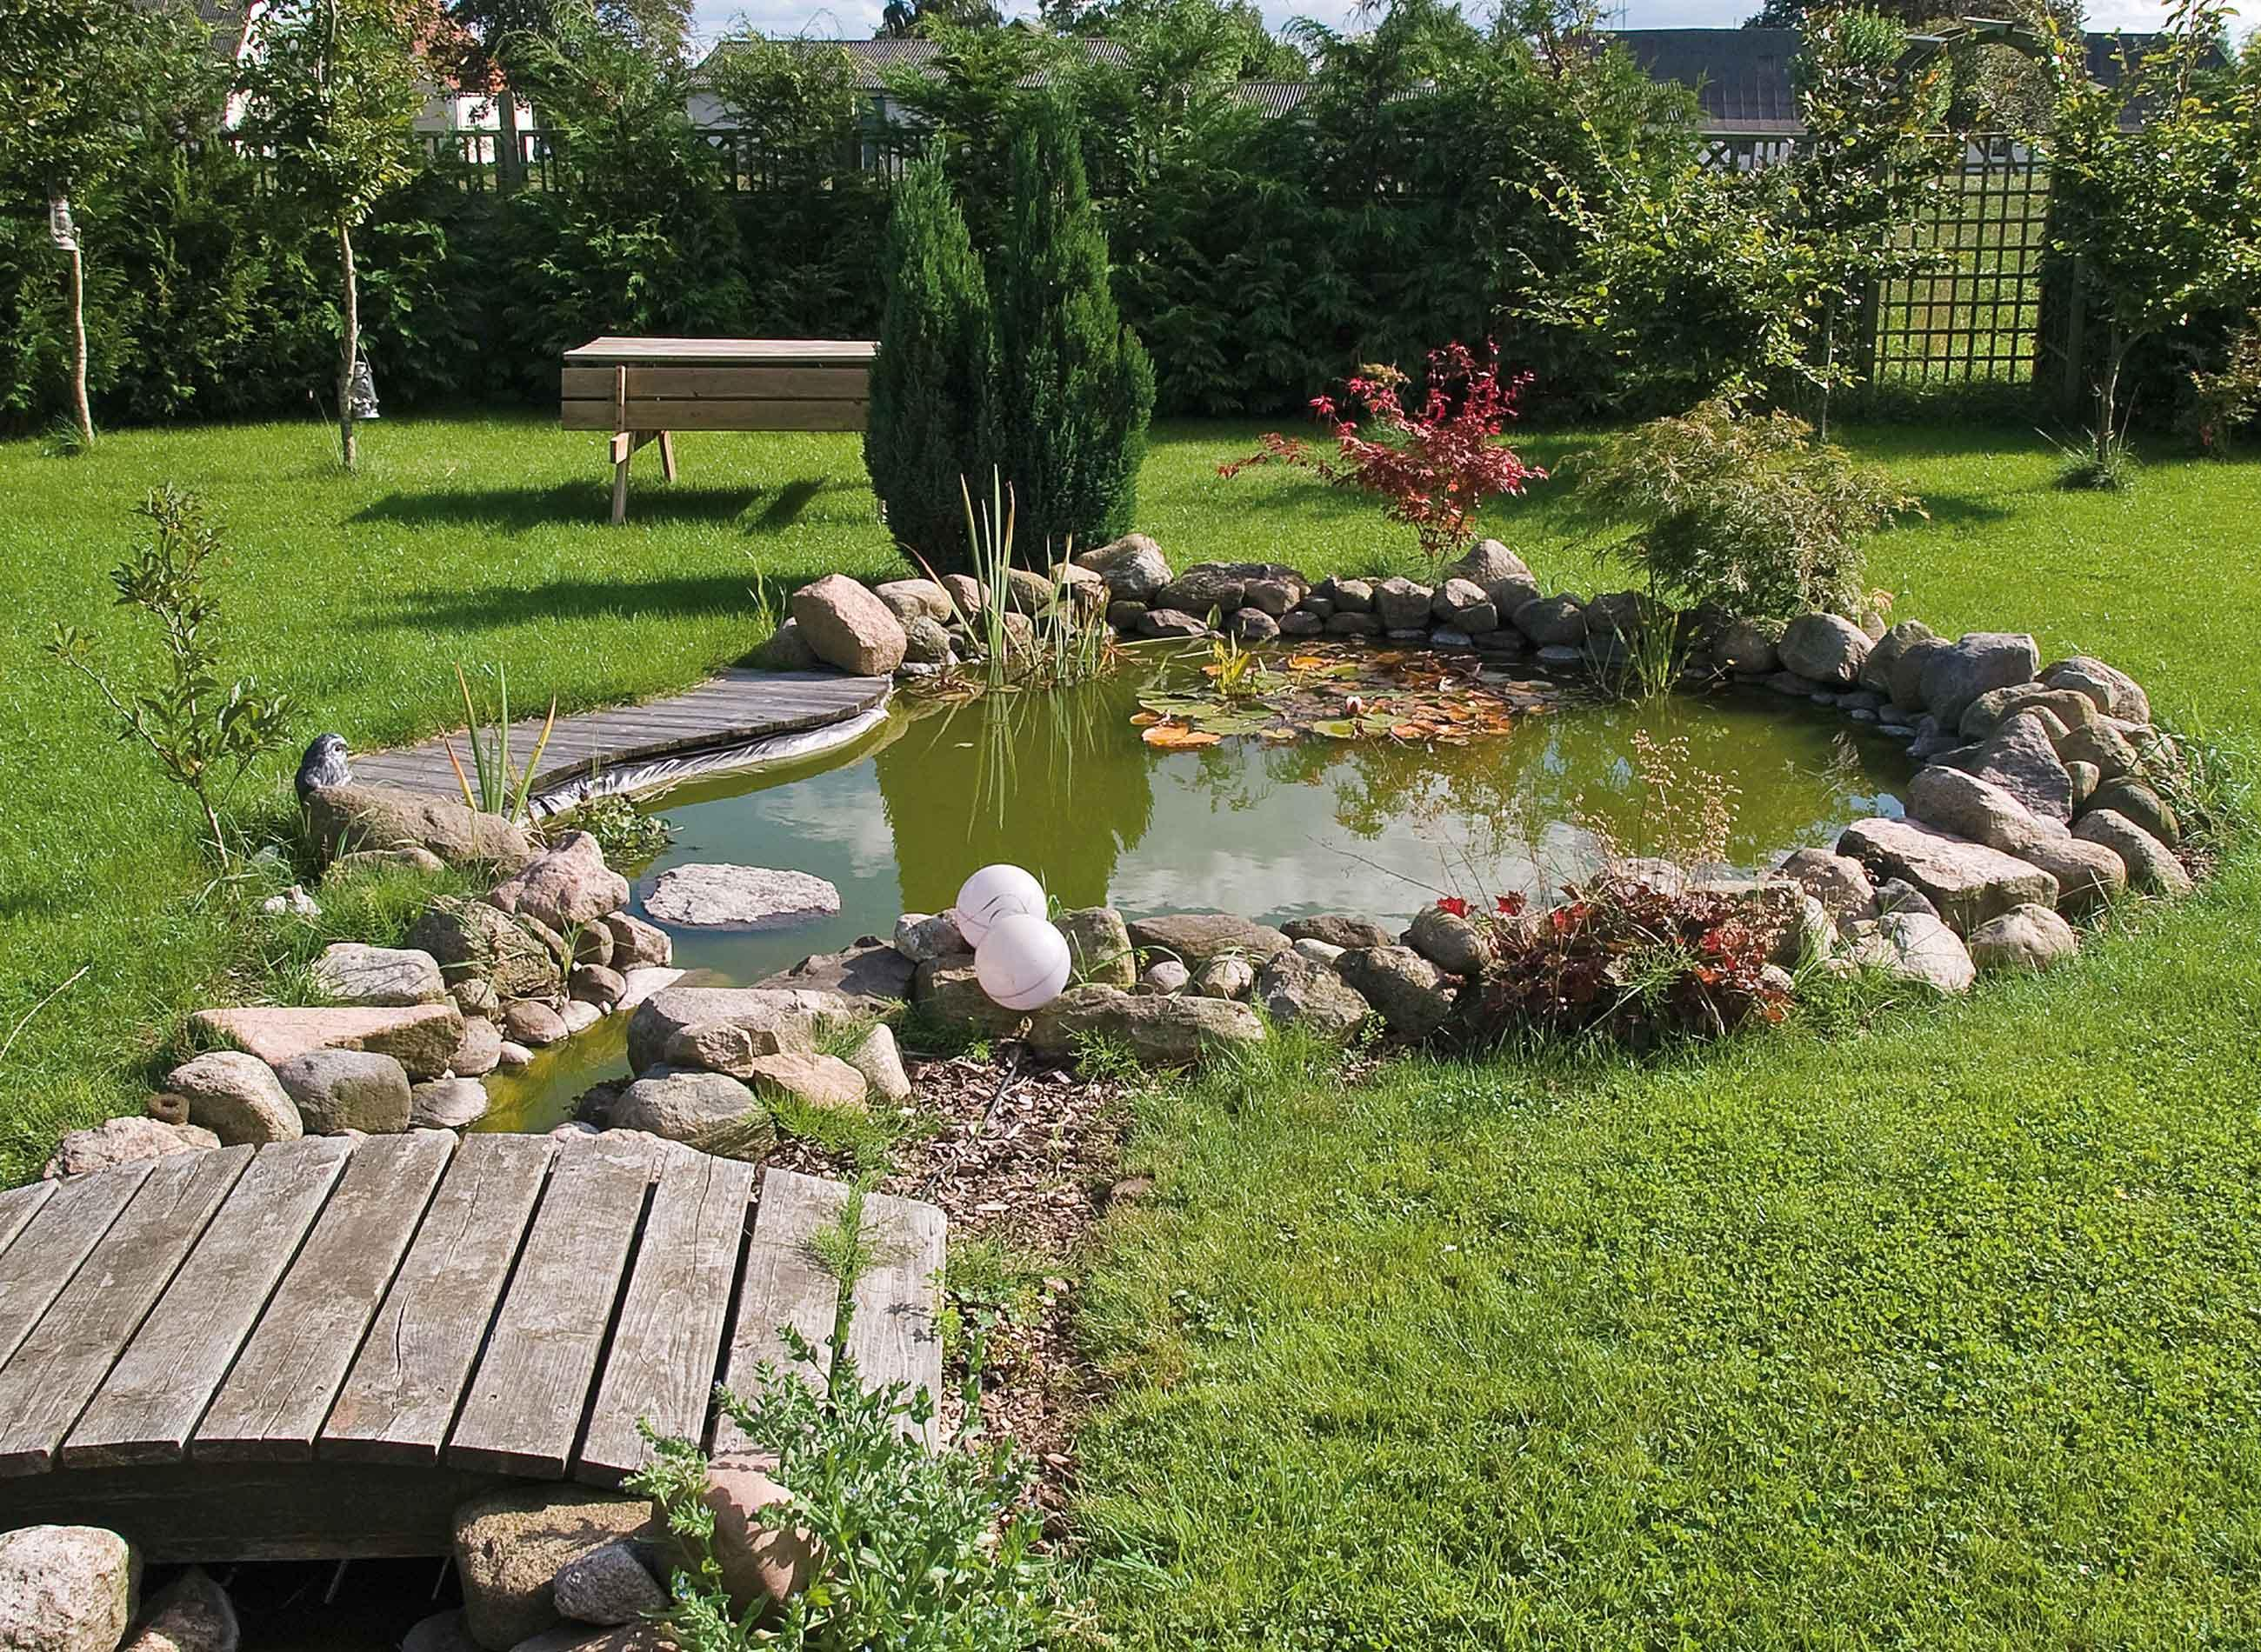 Am nagement bassin ext rieur lille cr ation tang jardin for Bassin d eau jardin